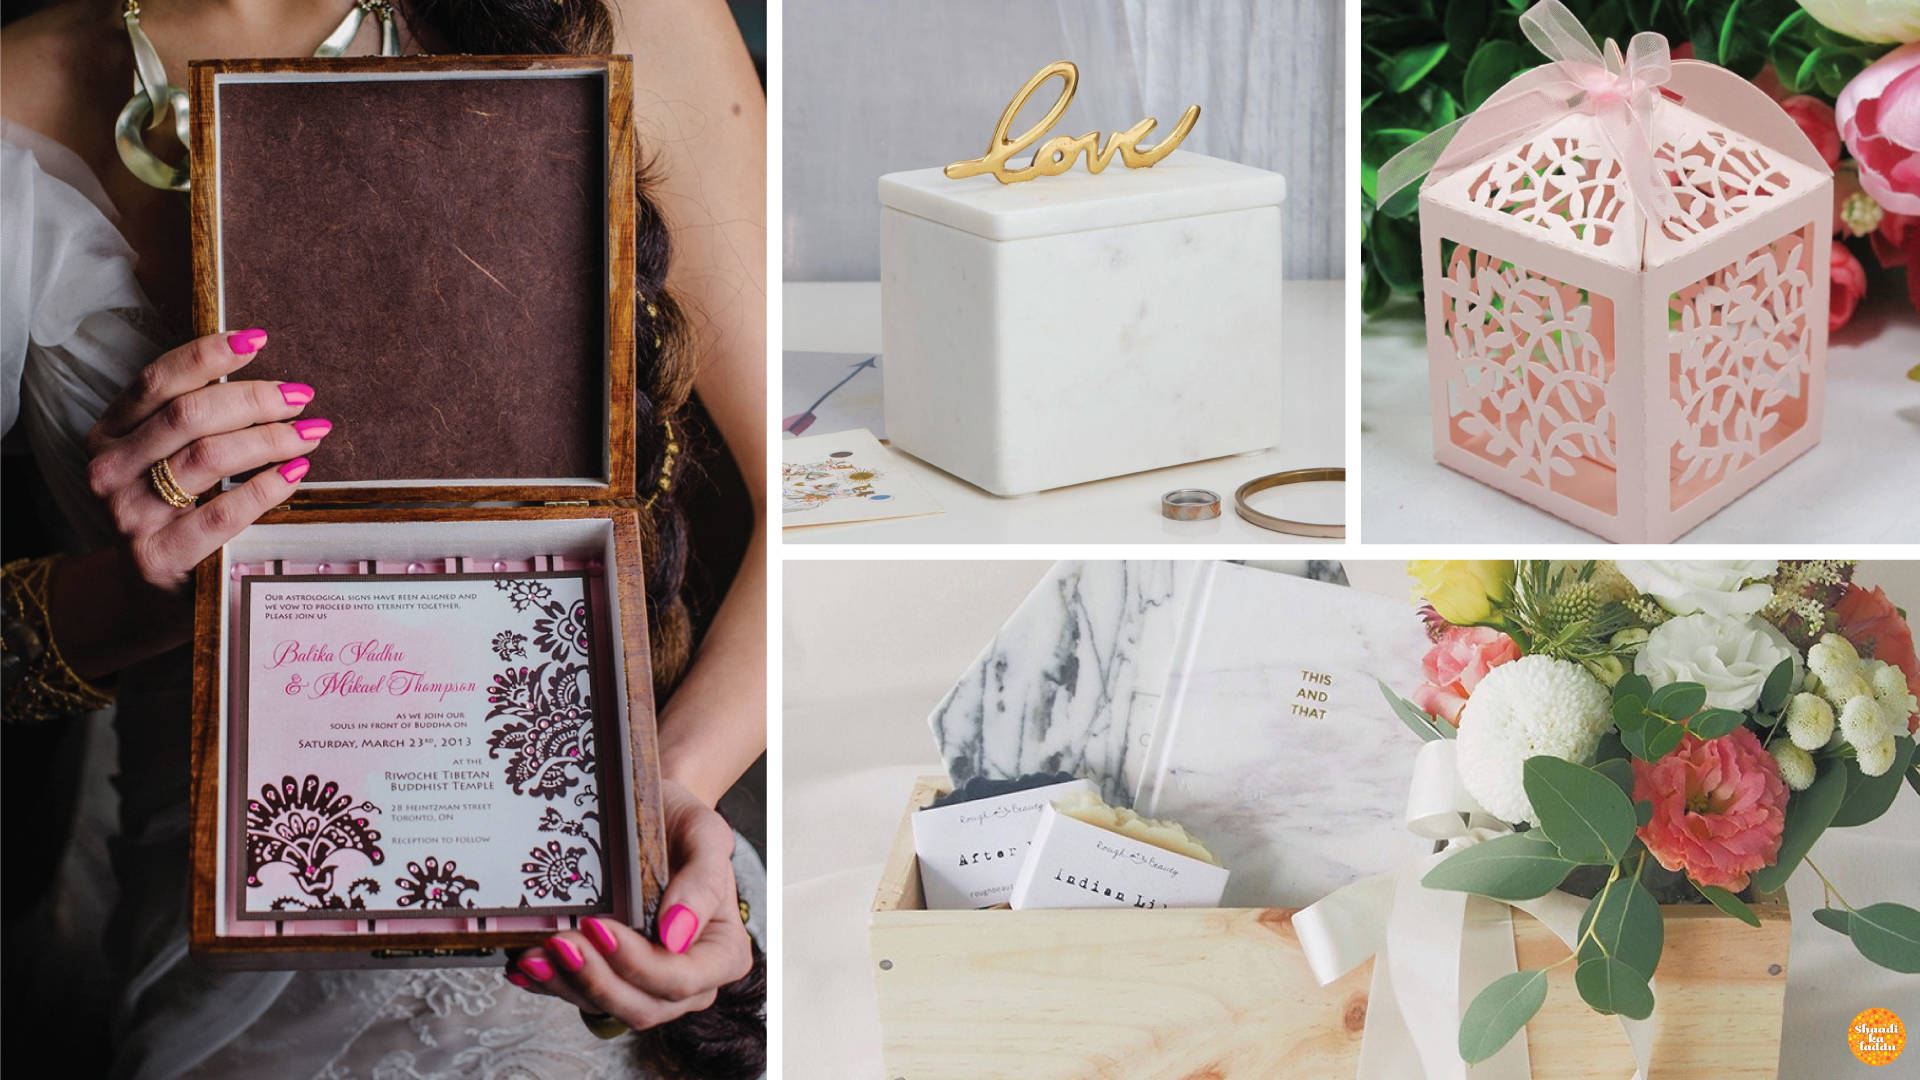 Re-usable packaging for guests as keepsakes.